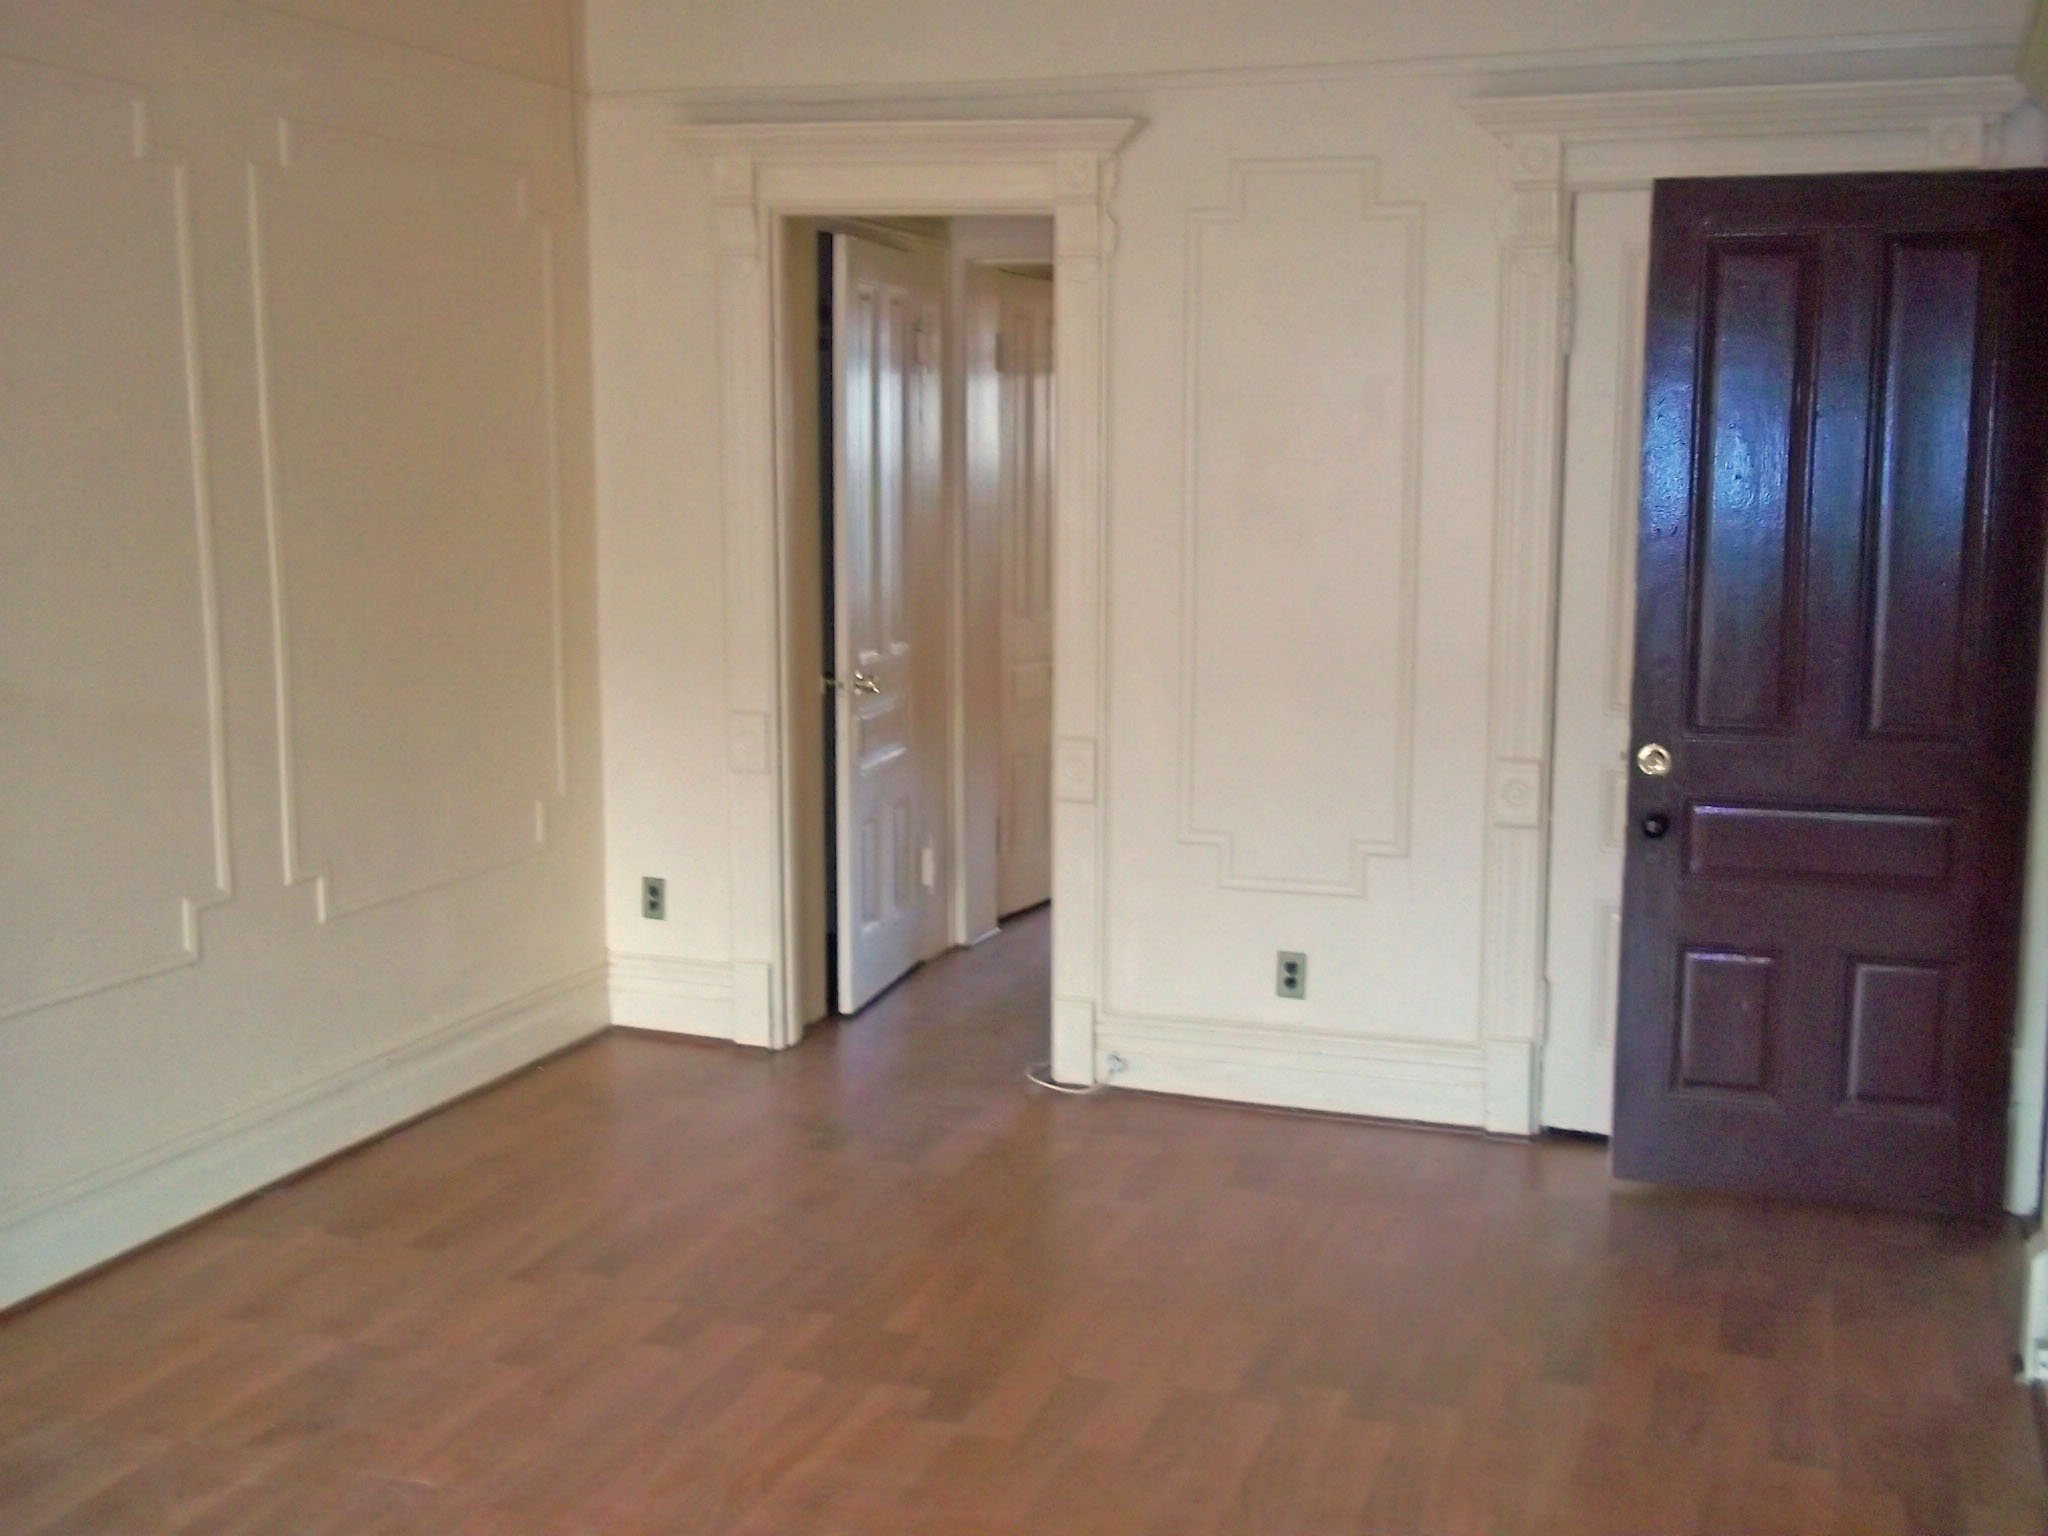 Best Bedford Stuyvesant 1 Bedroom Apartment For Rent Brooklyn Crg3107 With Pictures